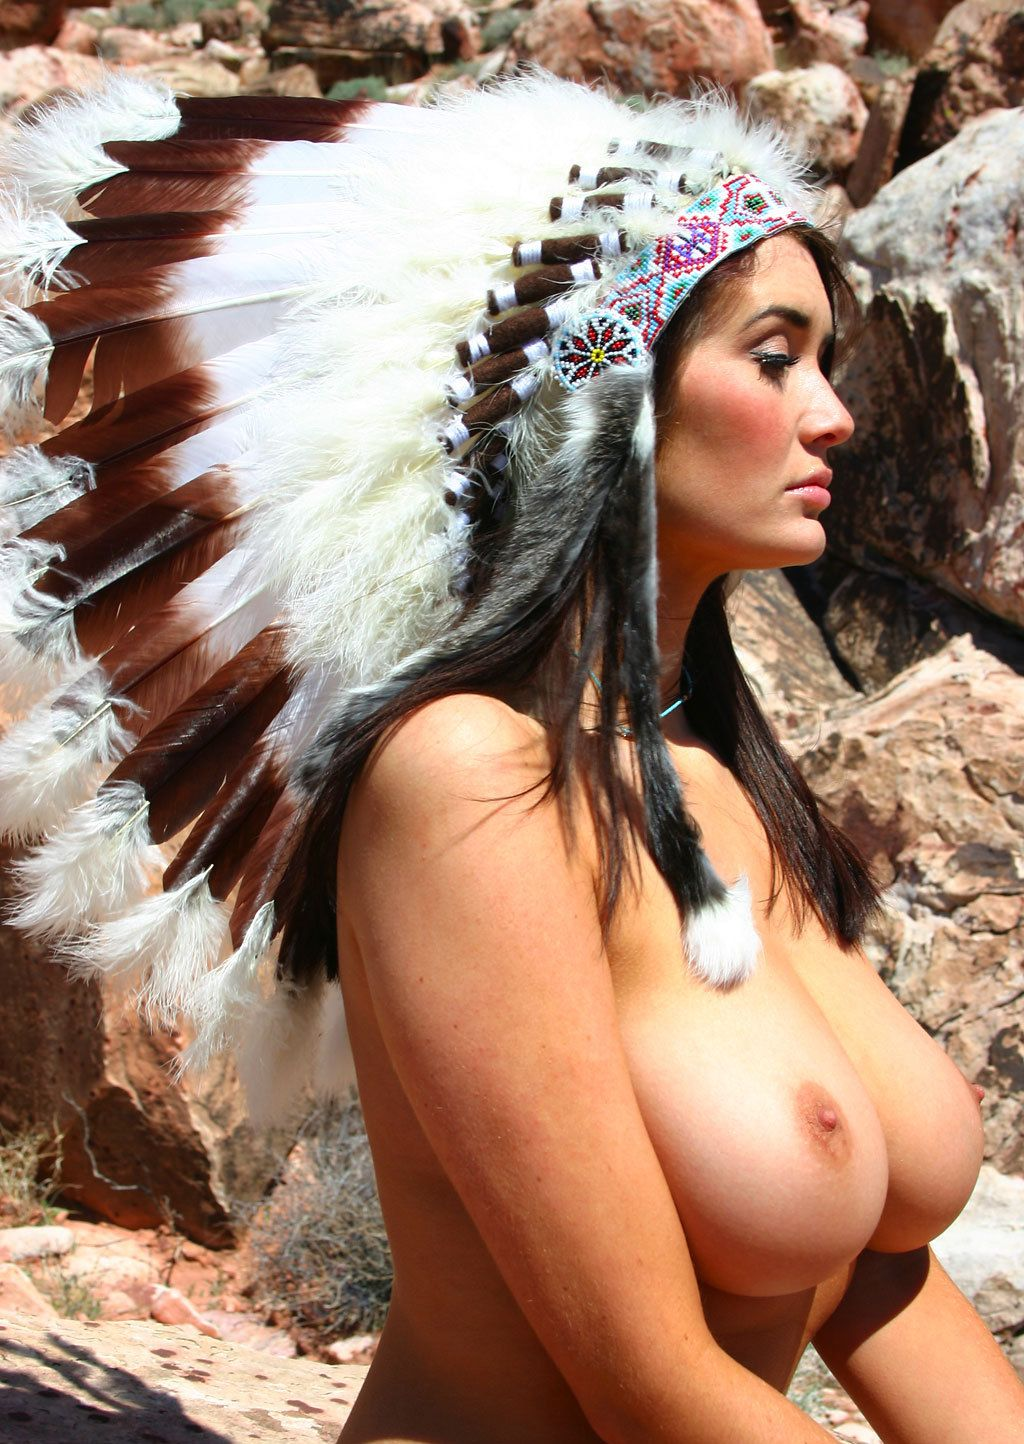 native-american-porn-sites-patricia-xxx